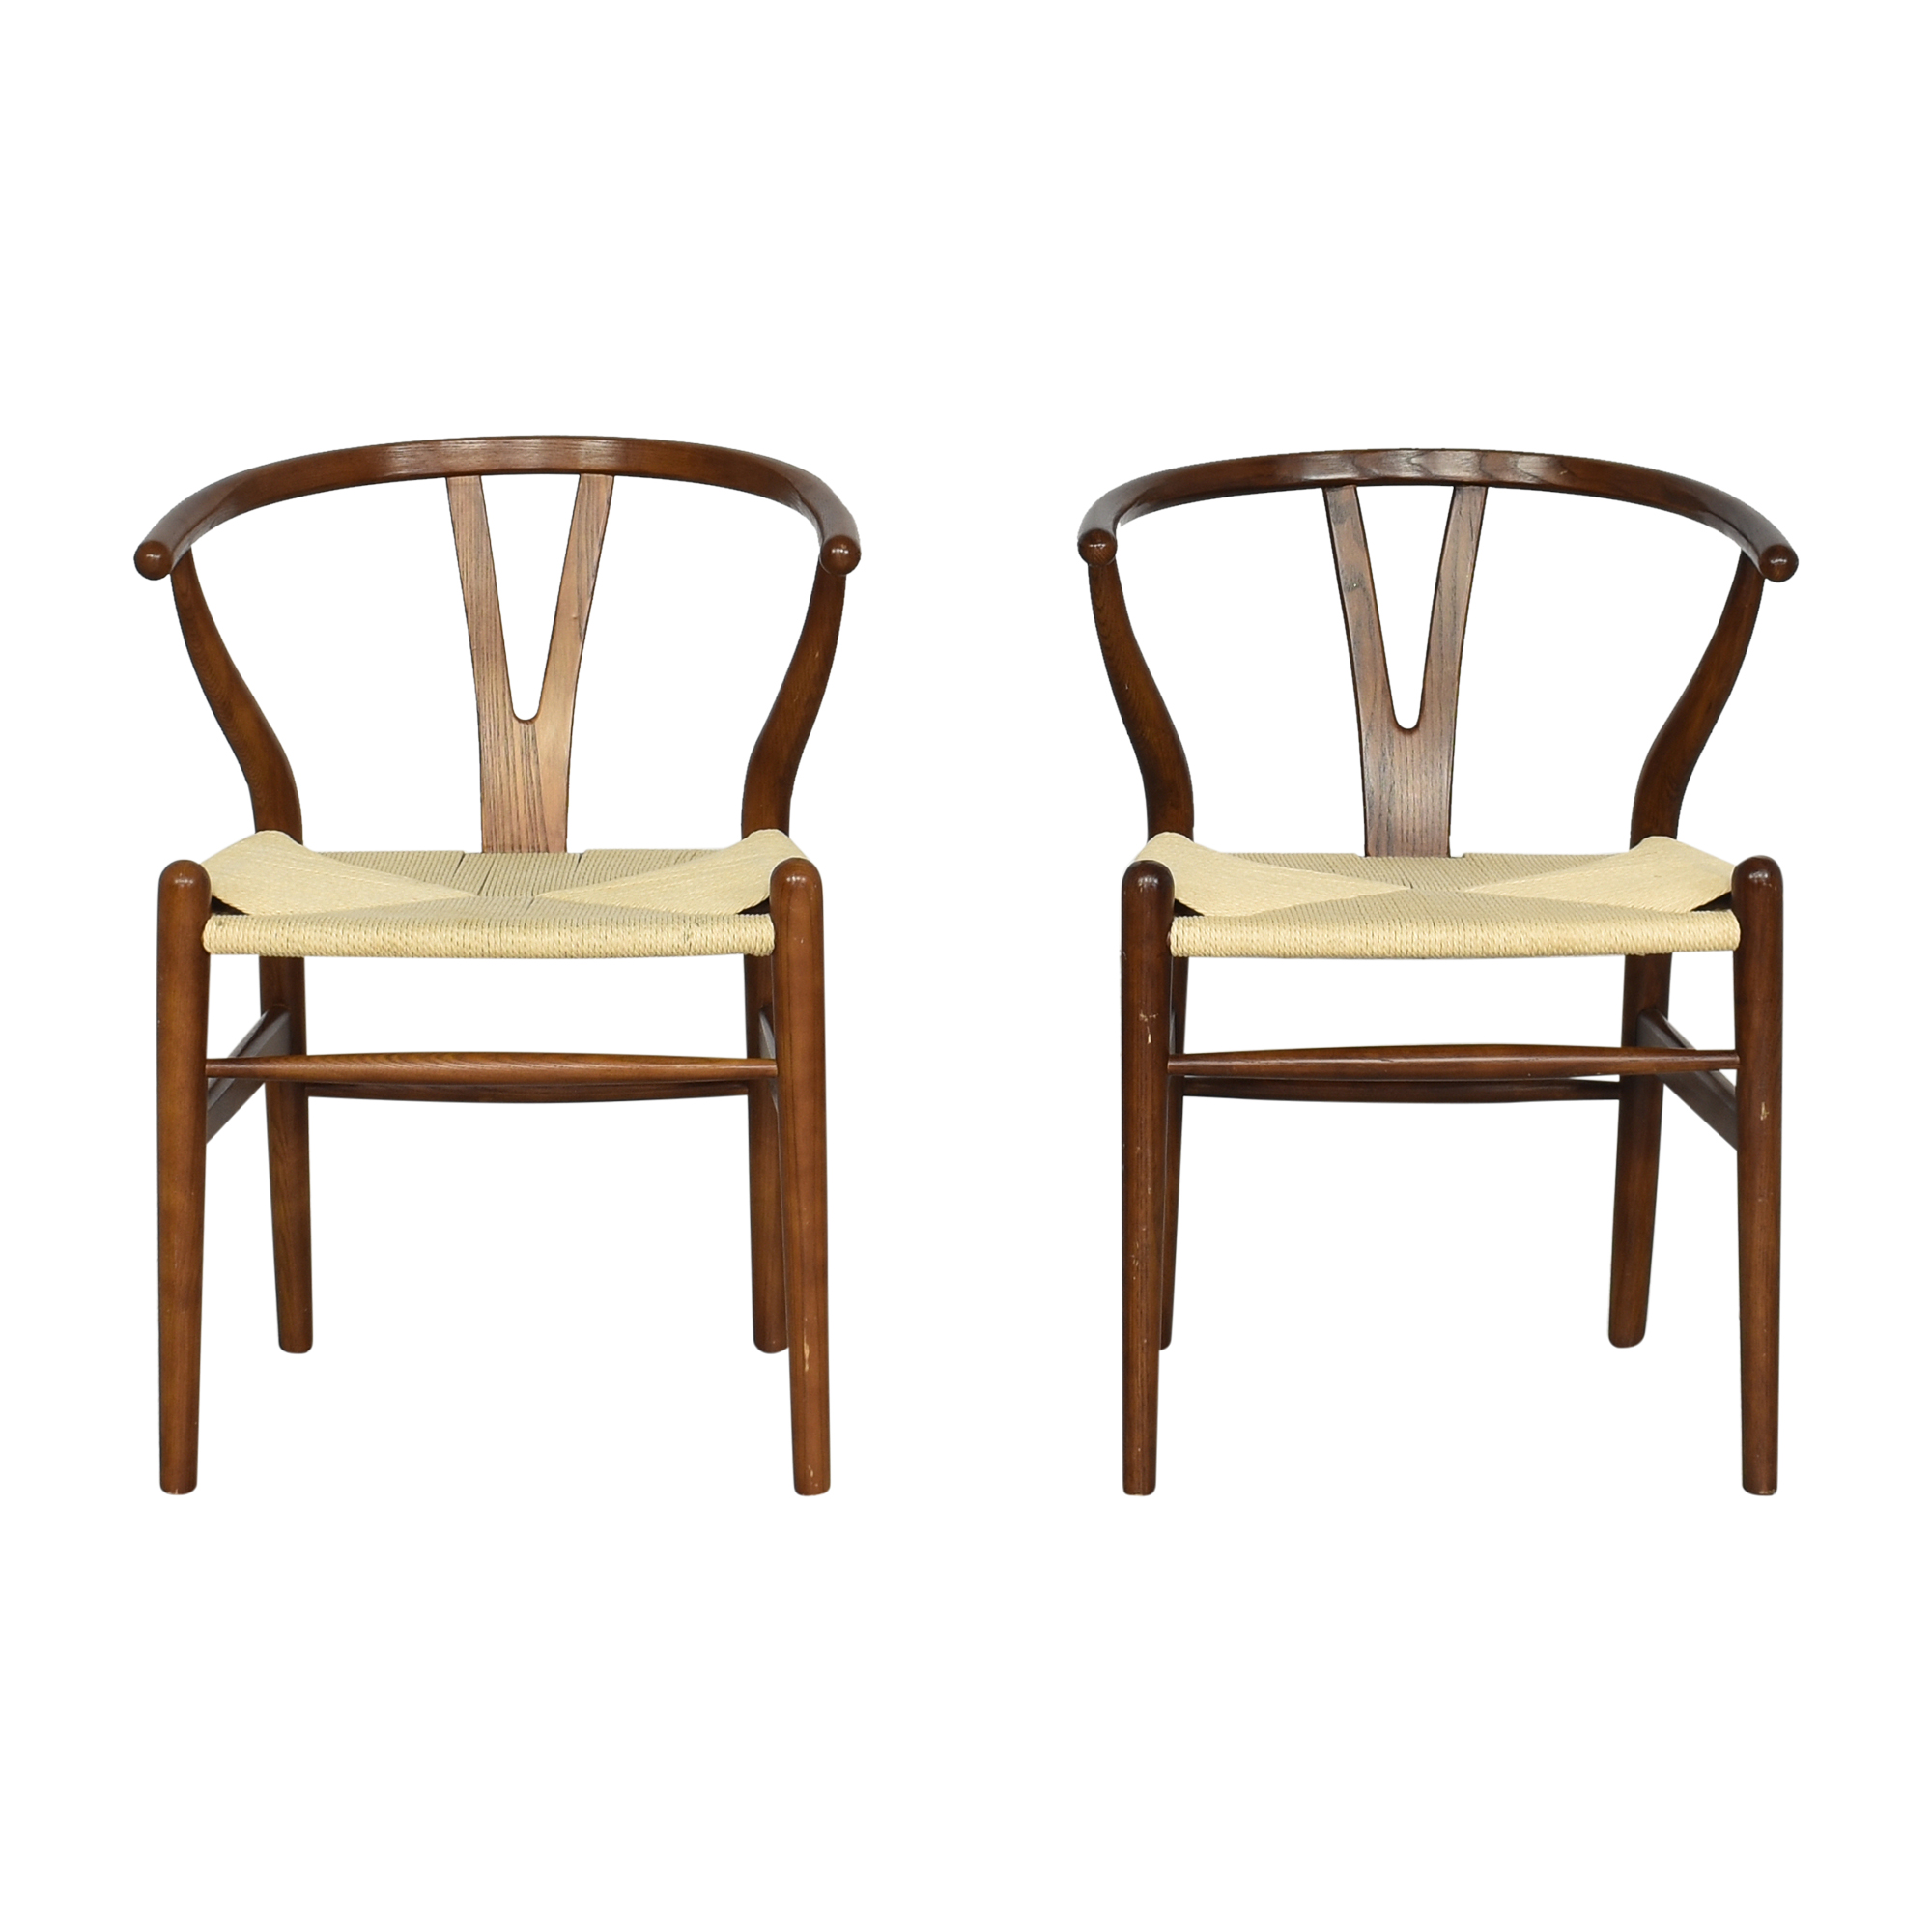 Rove Concepts Rove Concepts Wishbone Chairs dimensions